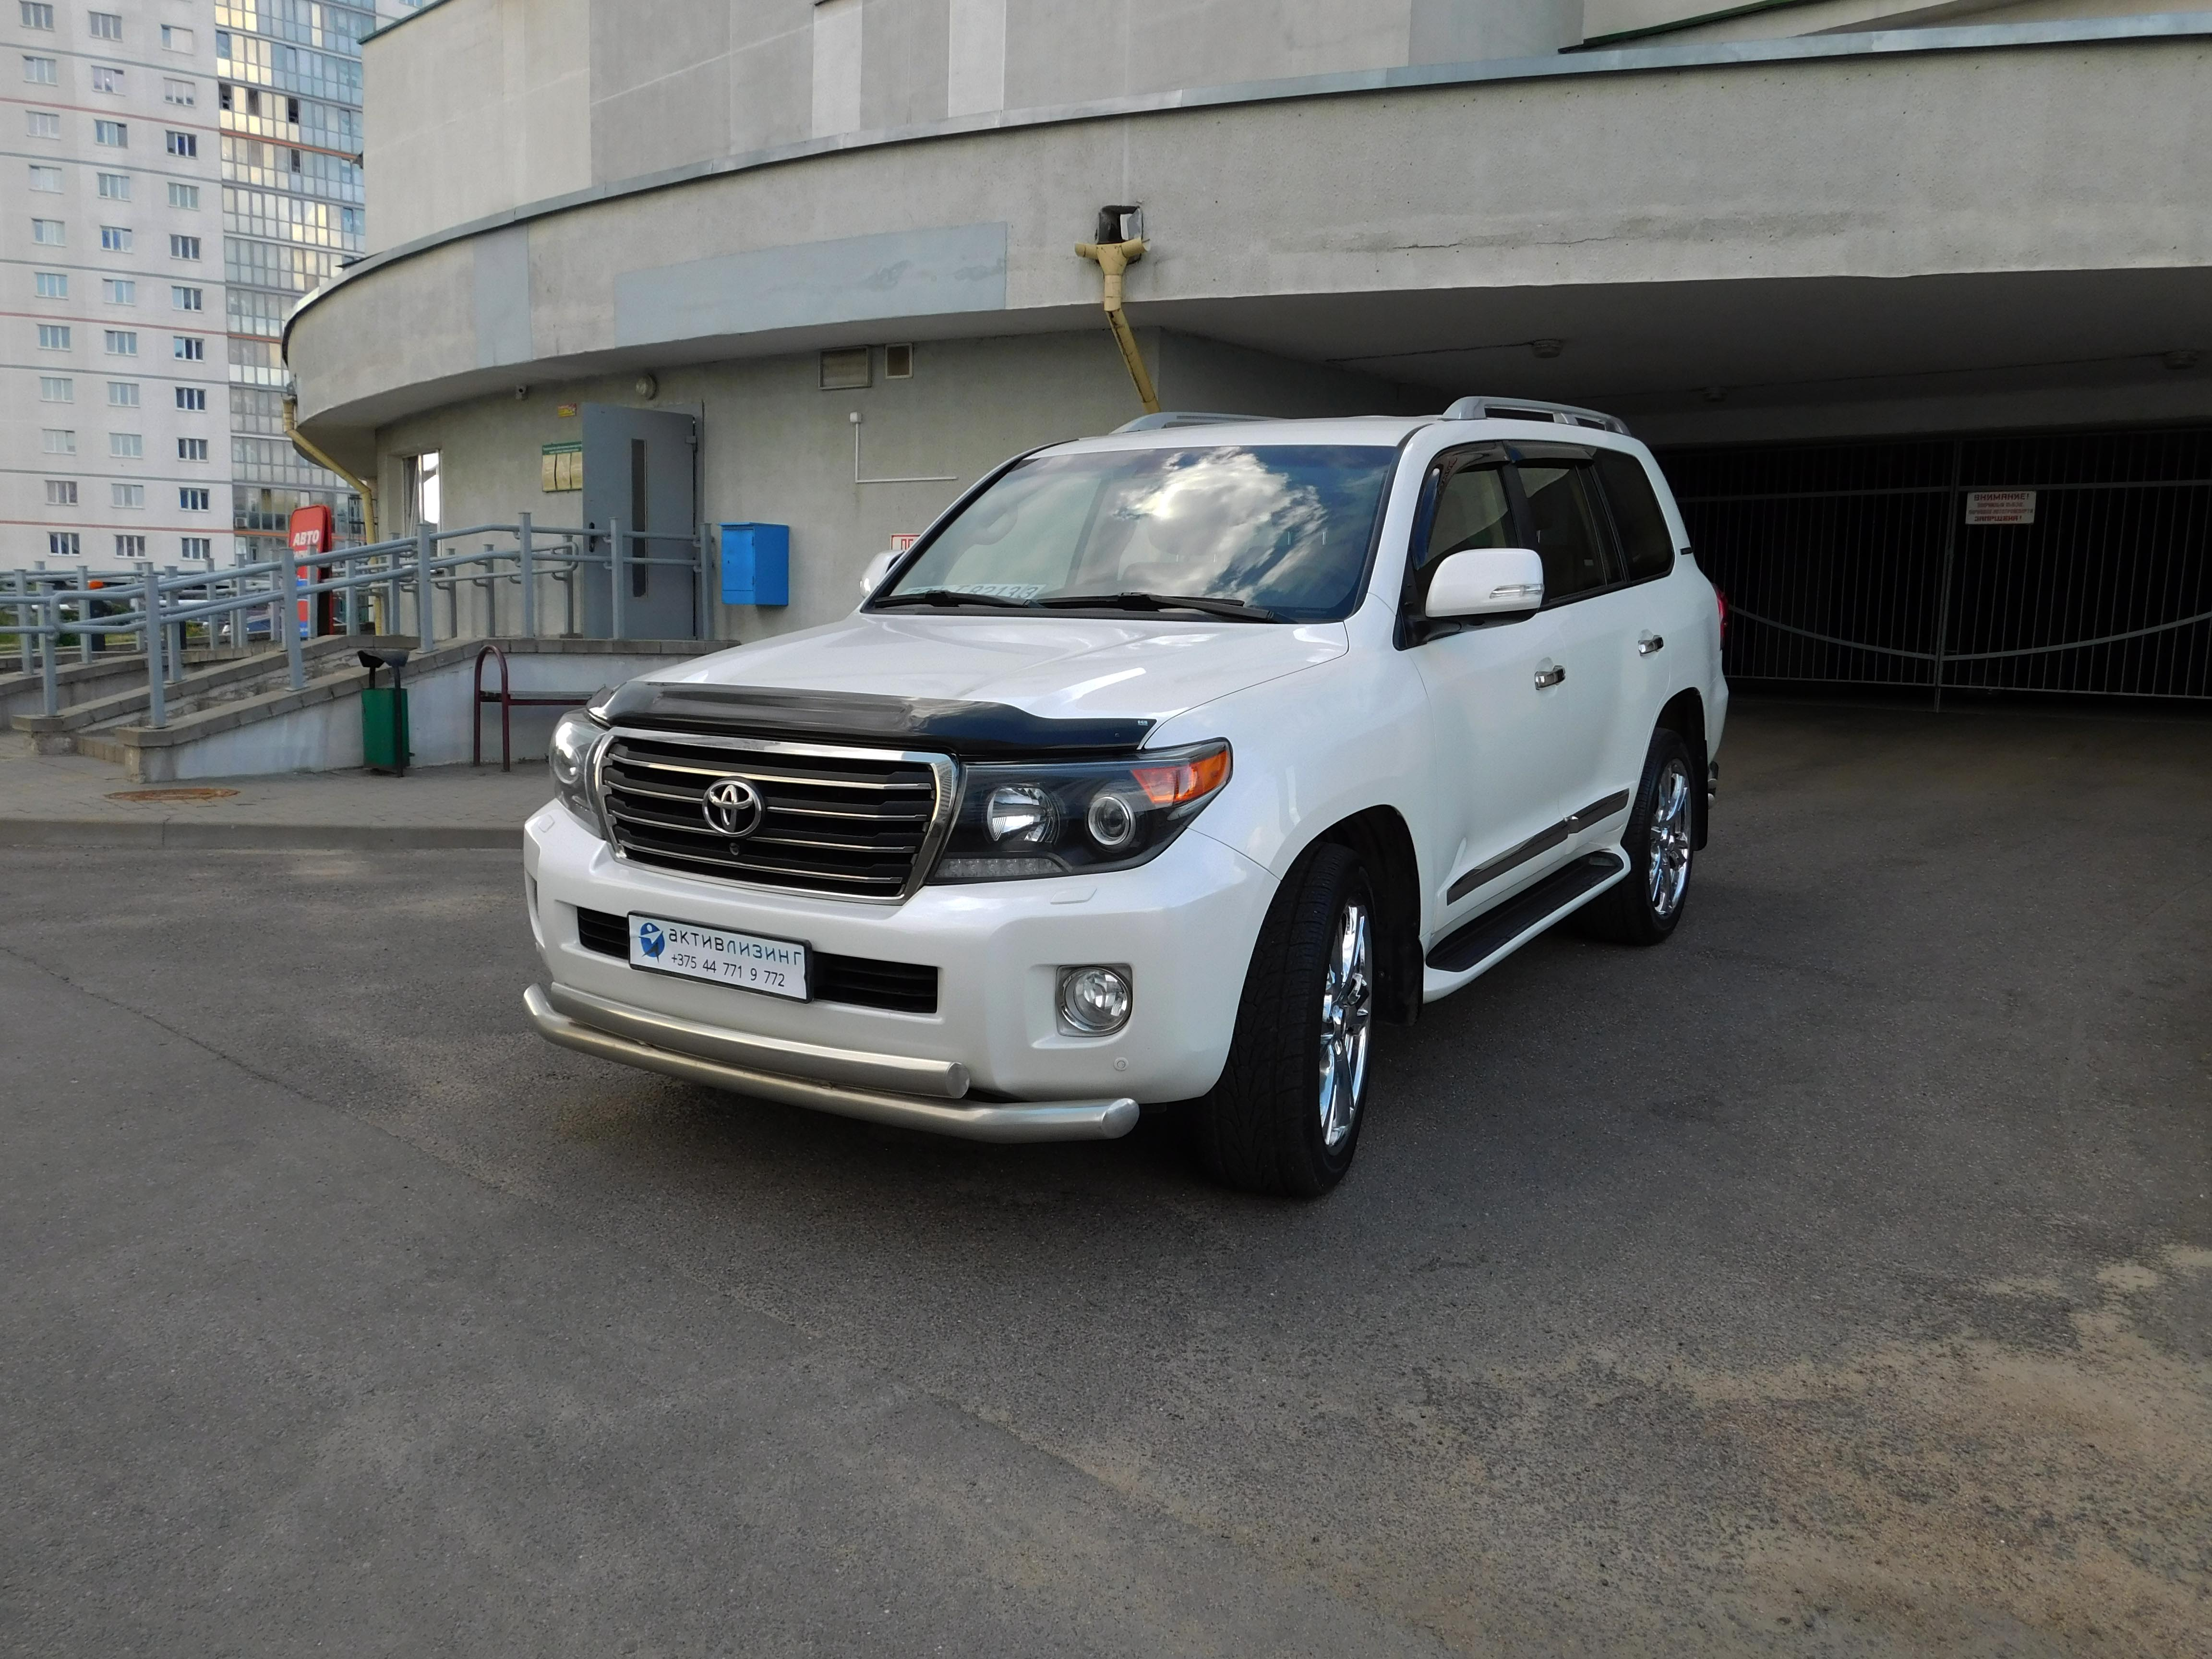 Toyota Land Cruiser Brownstone